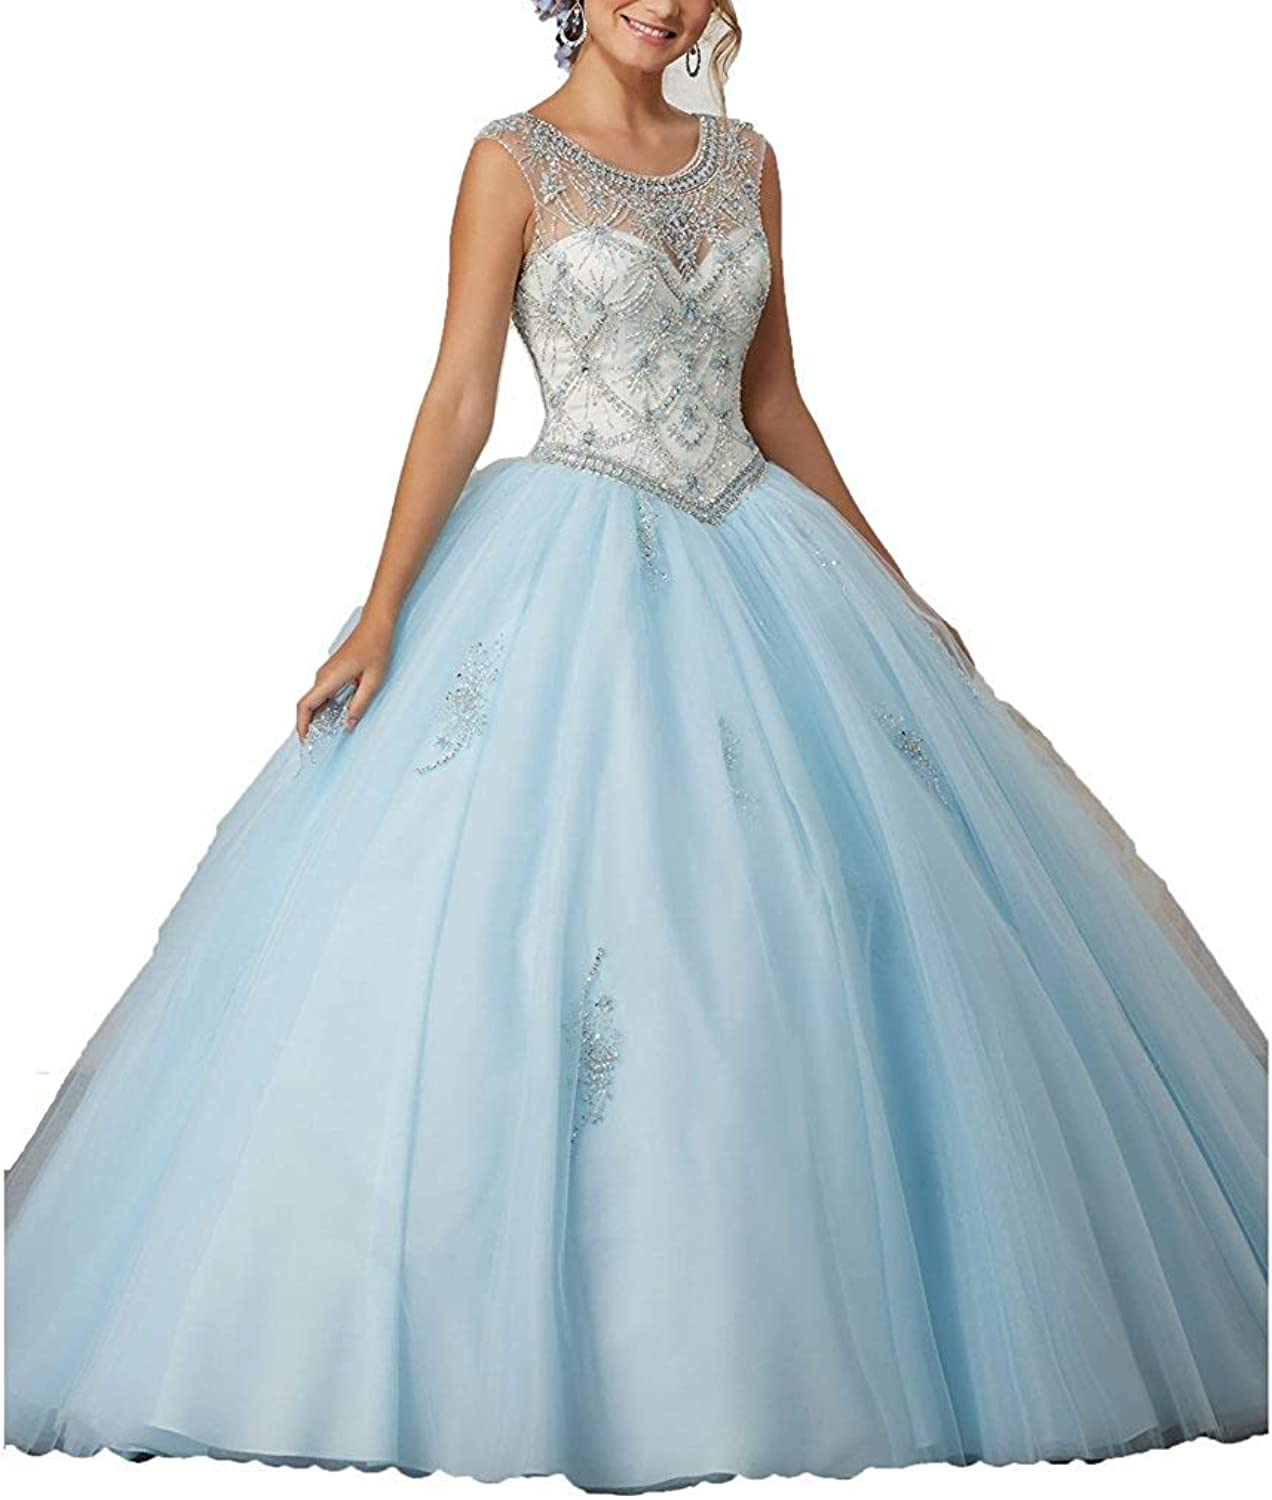 ANFF Women Long Quinceanera Dresses Sweet 16 Big Girls Prom Ball Gowns